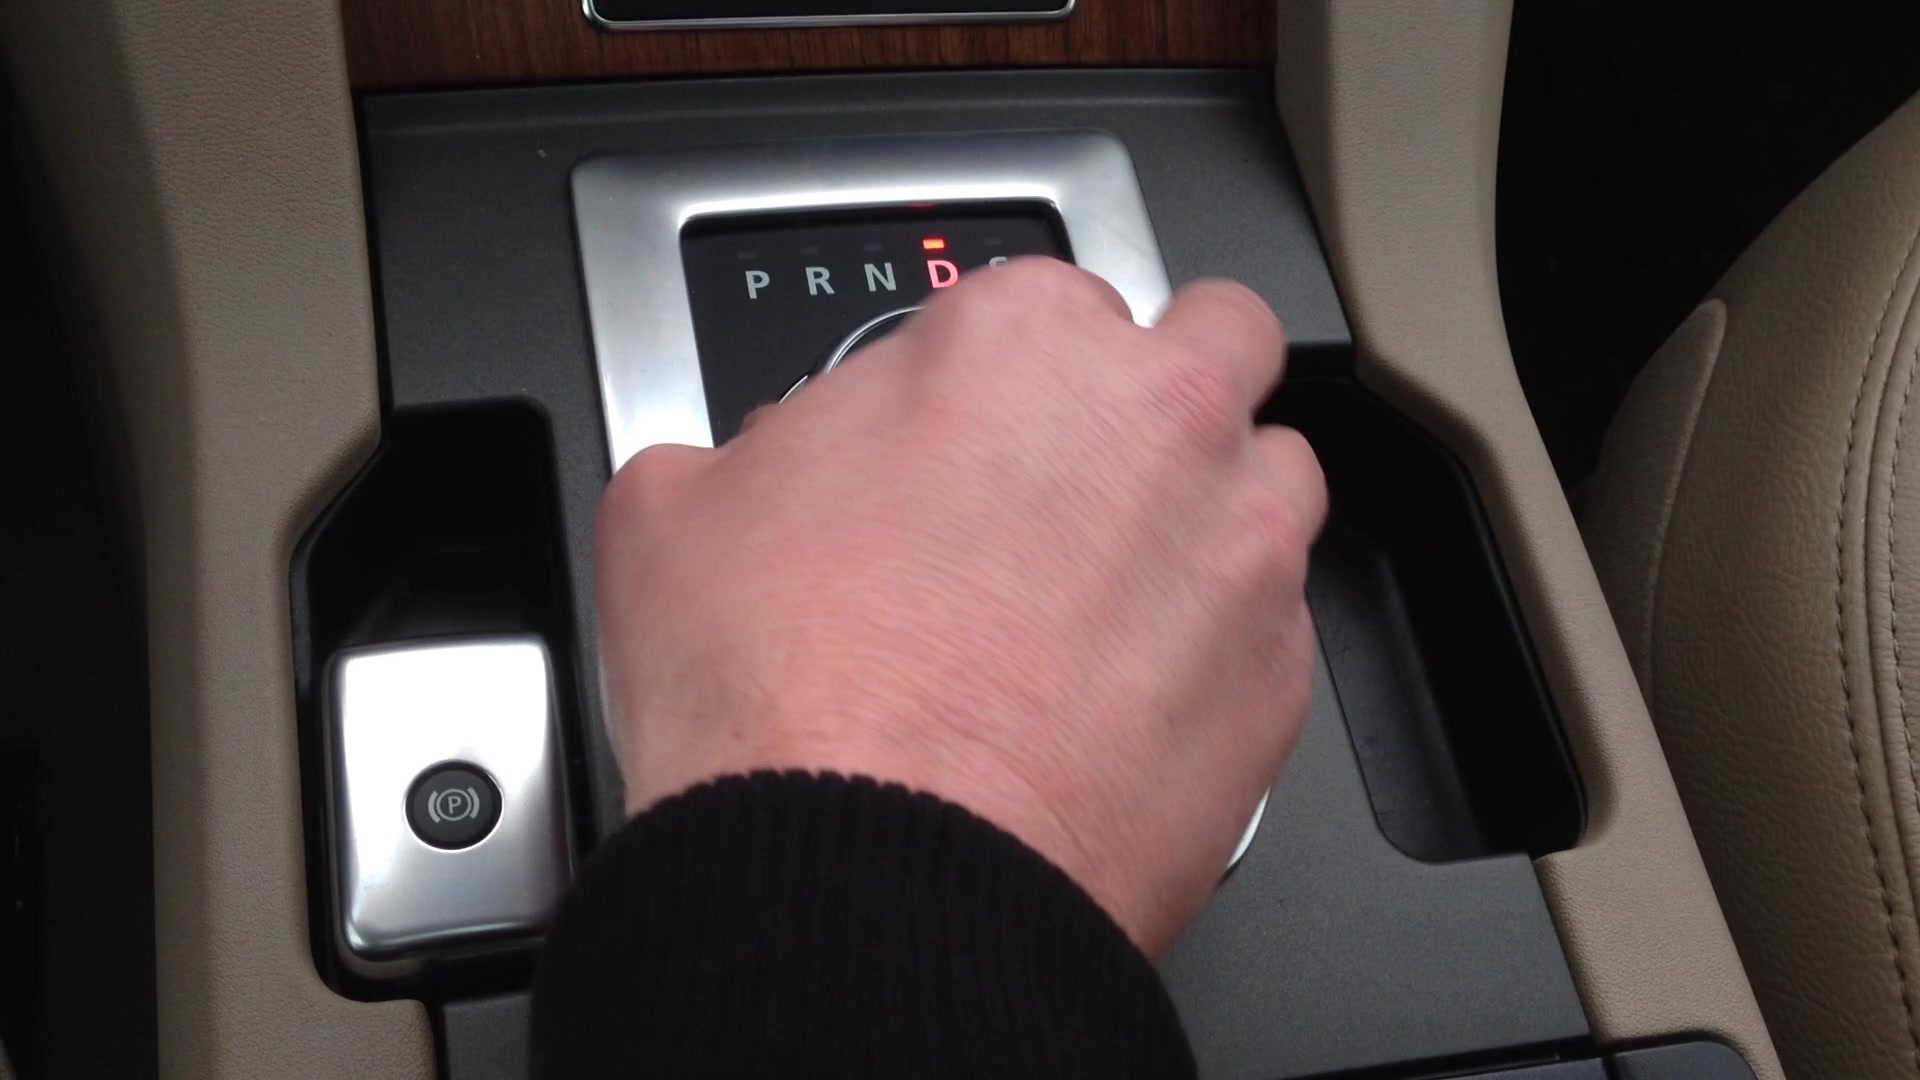 2015 Land Rover LR4 Shift Knob | Autoblog Short Cuts